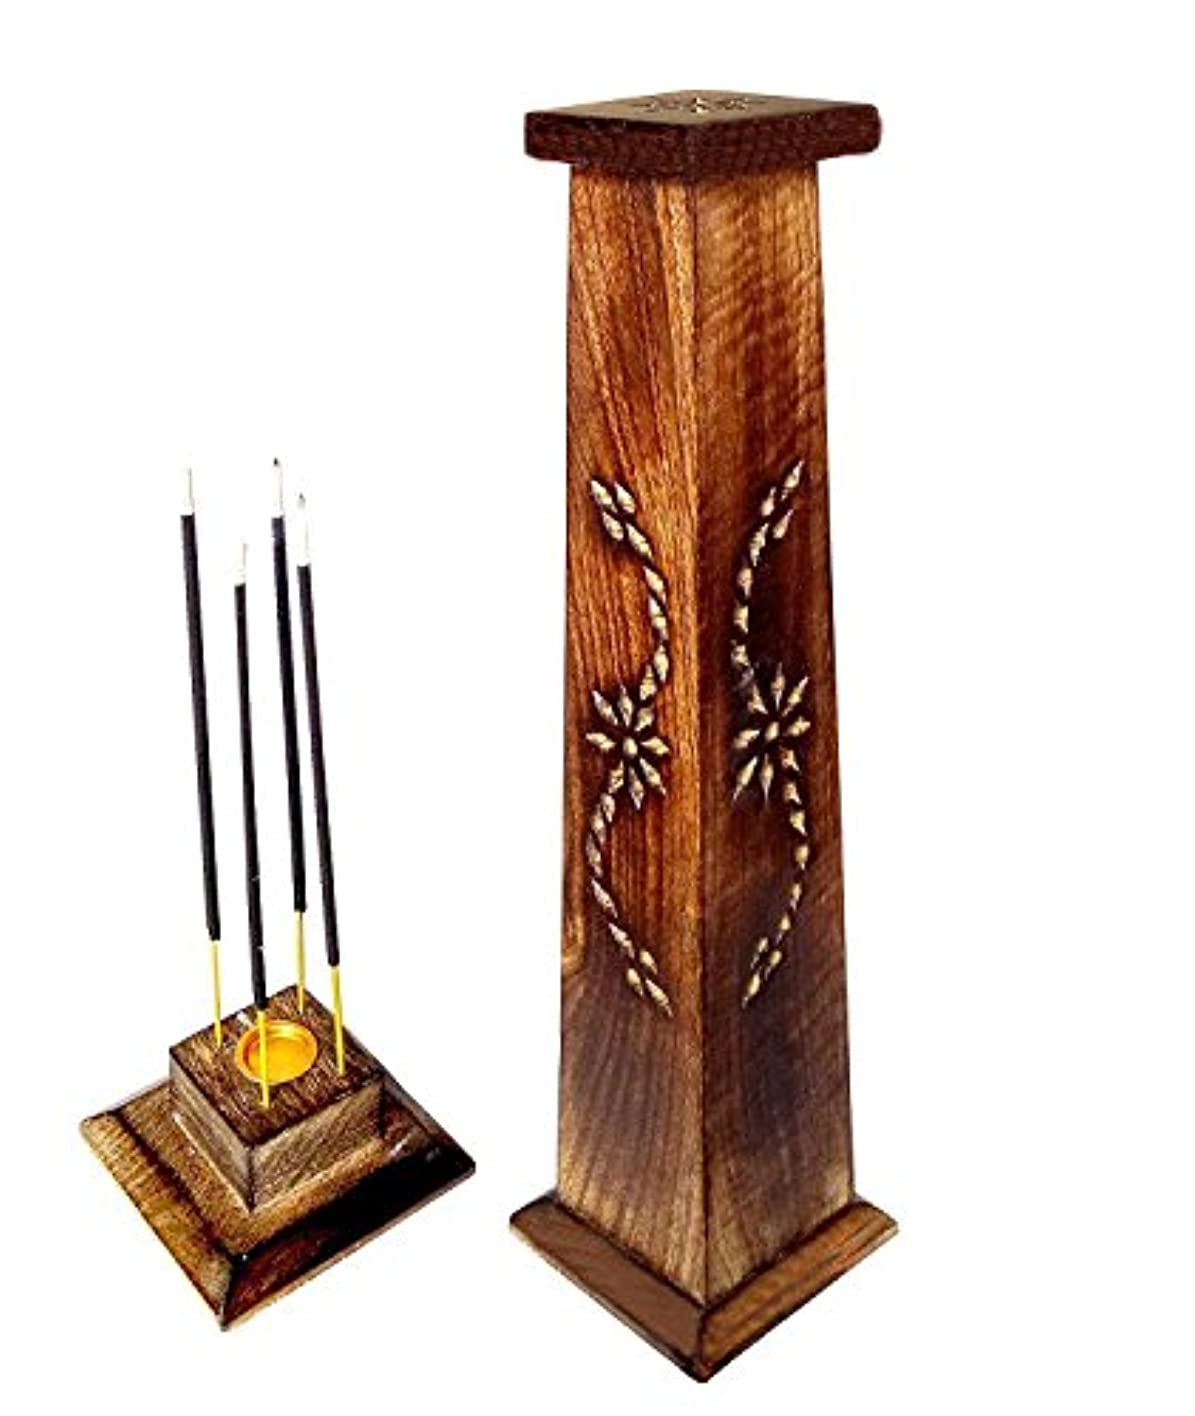 慣習リード五木製香炉Ideal for Aromatherapy、禅、Spa、Vastu、レイキChakra Votive Candle Garden Incense Tower 12